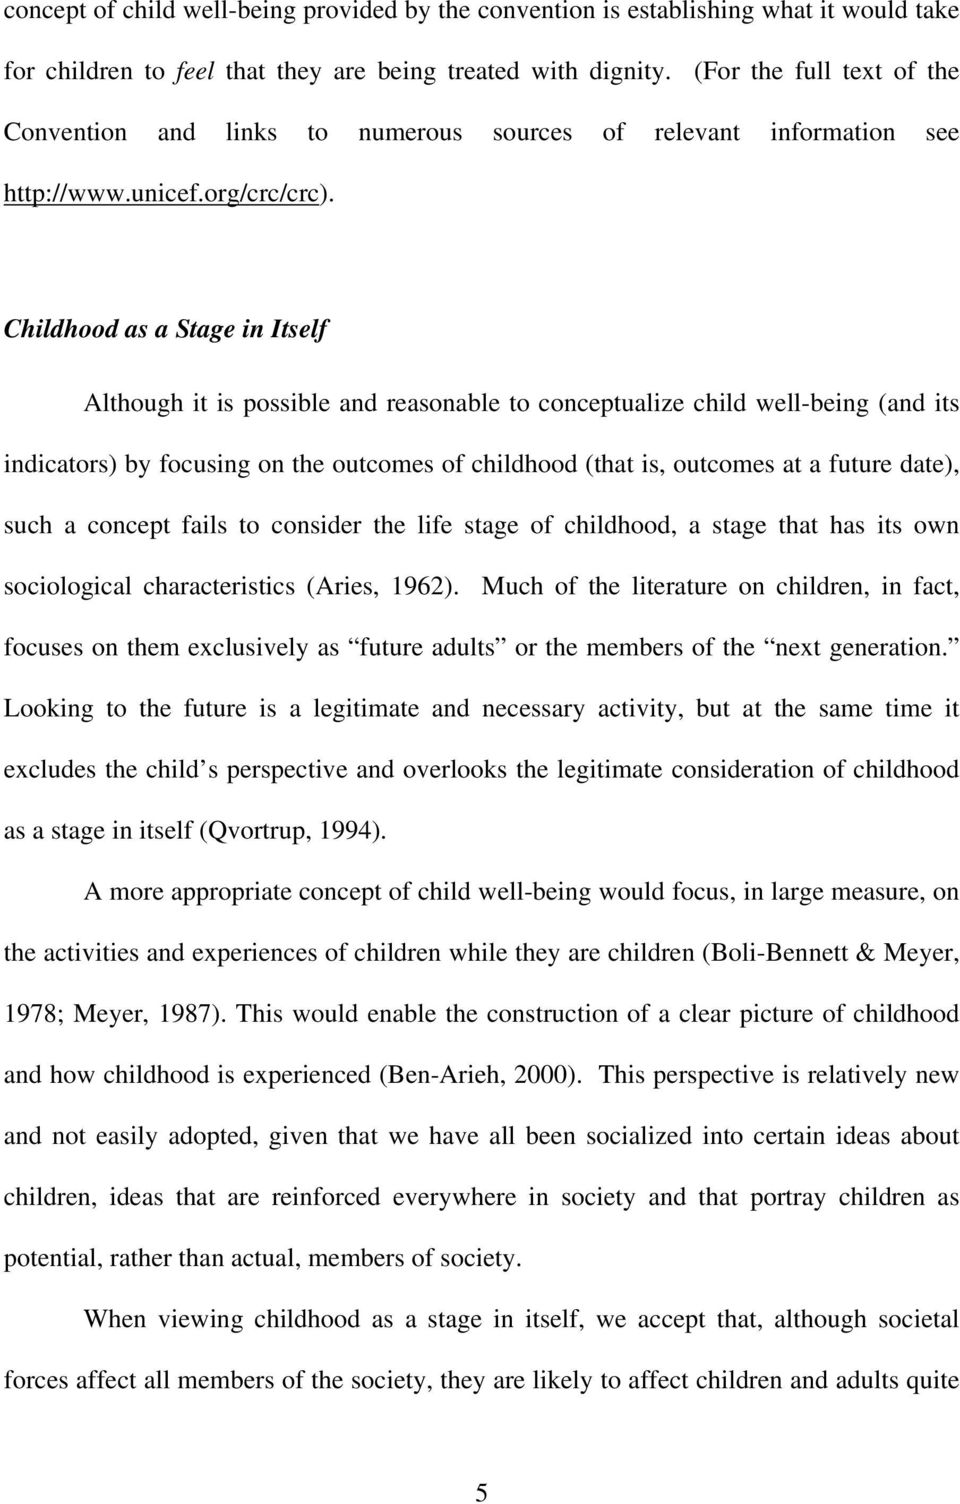 Childhood as a Stage in Itself Although it is possible and reasonable to conceptualize child well-being (and its indicators) by focusing on the outcomes of childhood (that is, outcomes at a future